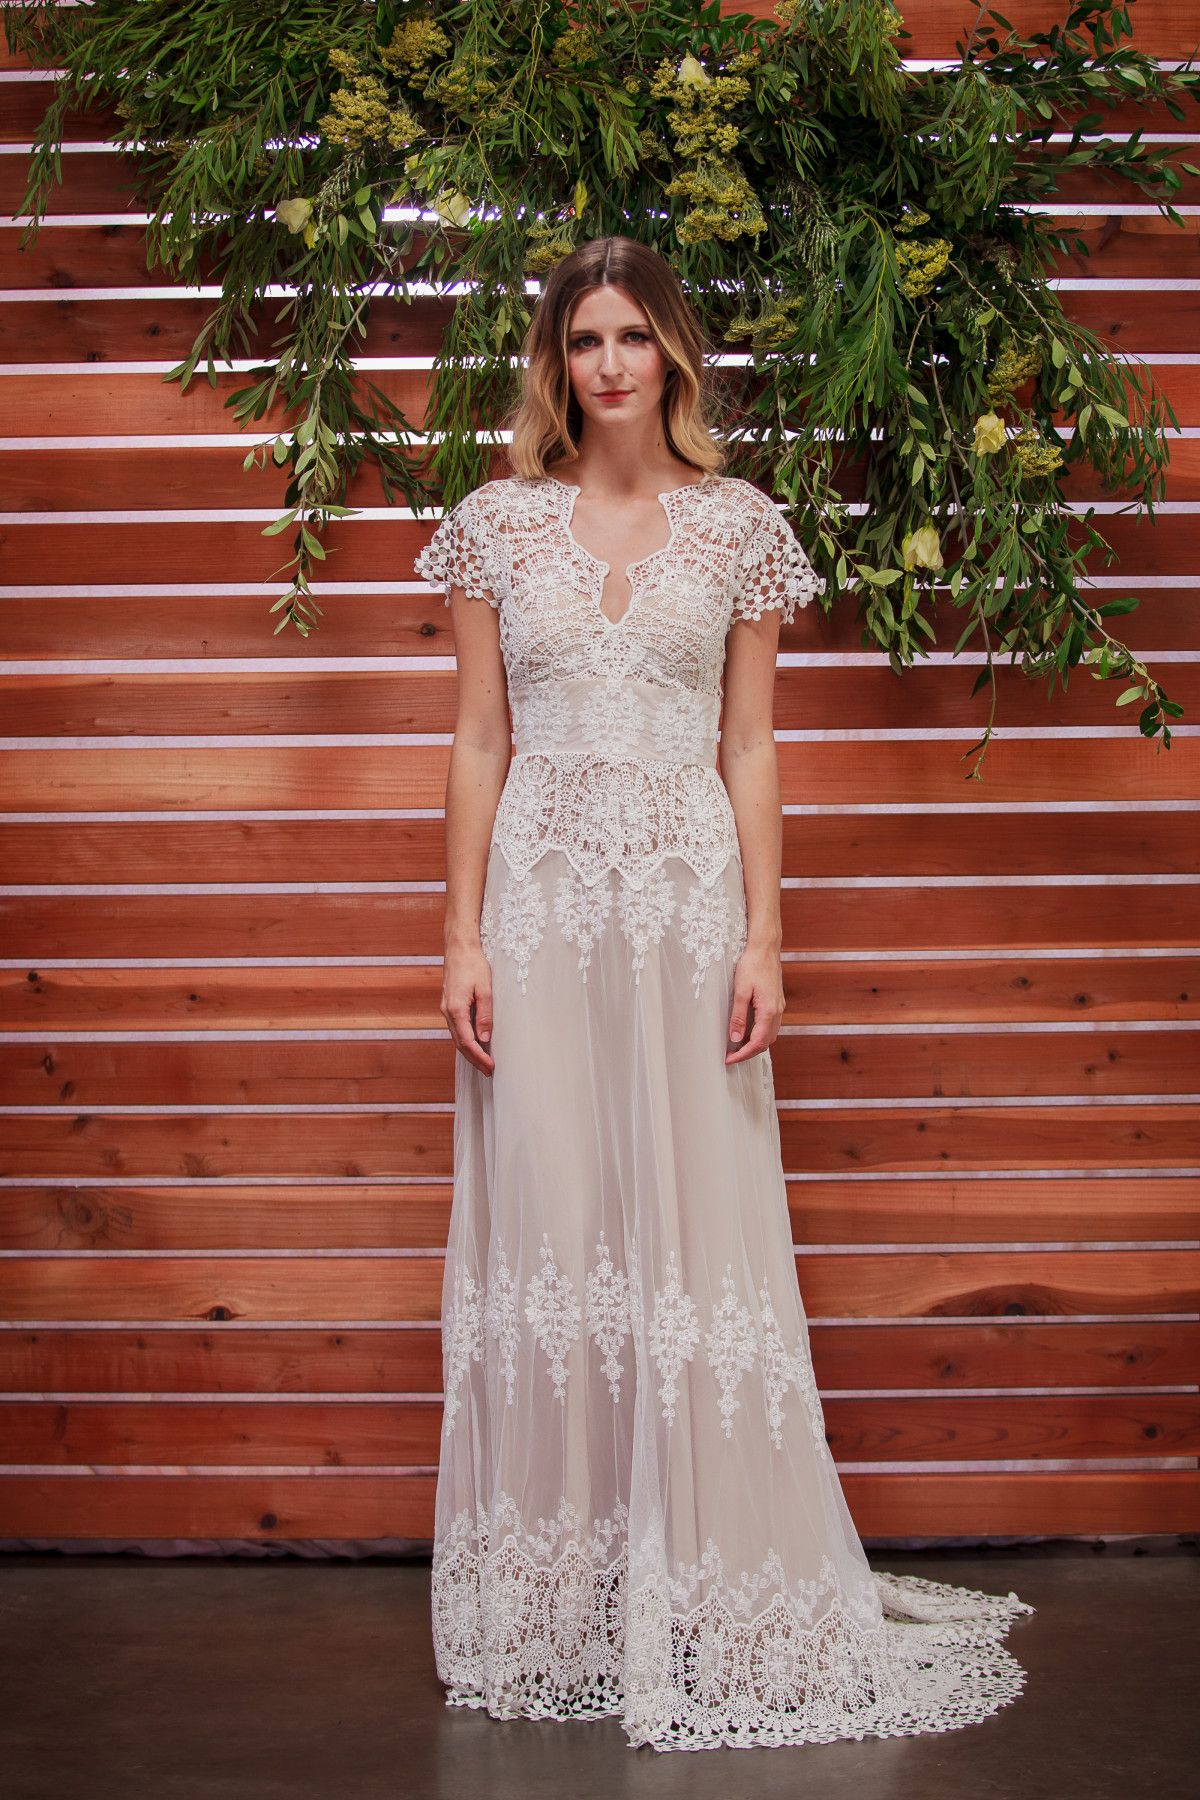 61d61f3a3 dreamers-and-lovers-azalea -lace-bohemian-wedding-dress-with-crochet-scallop-hem-and-train